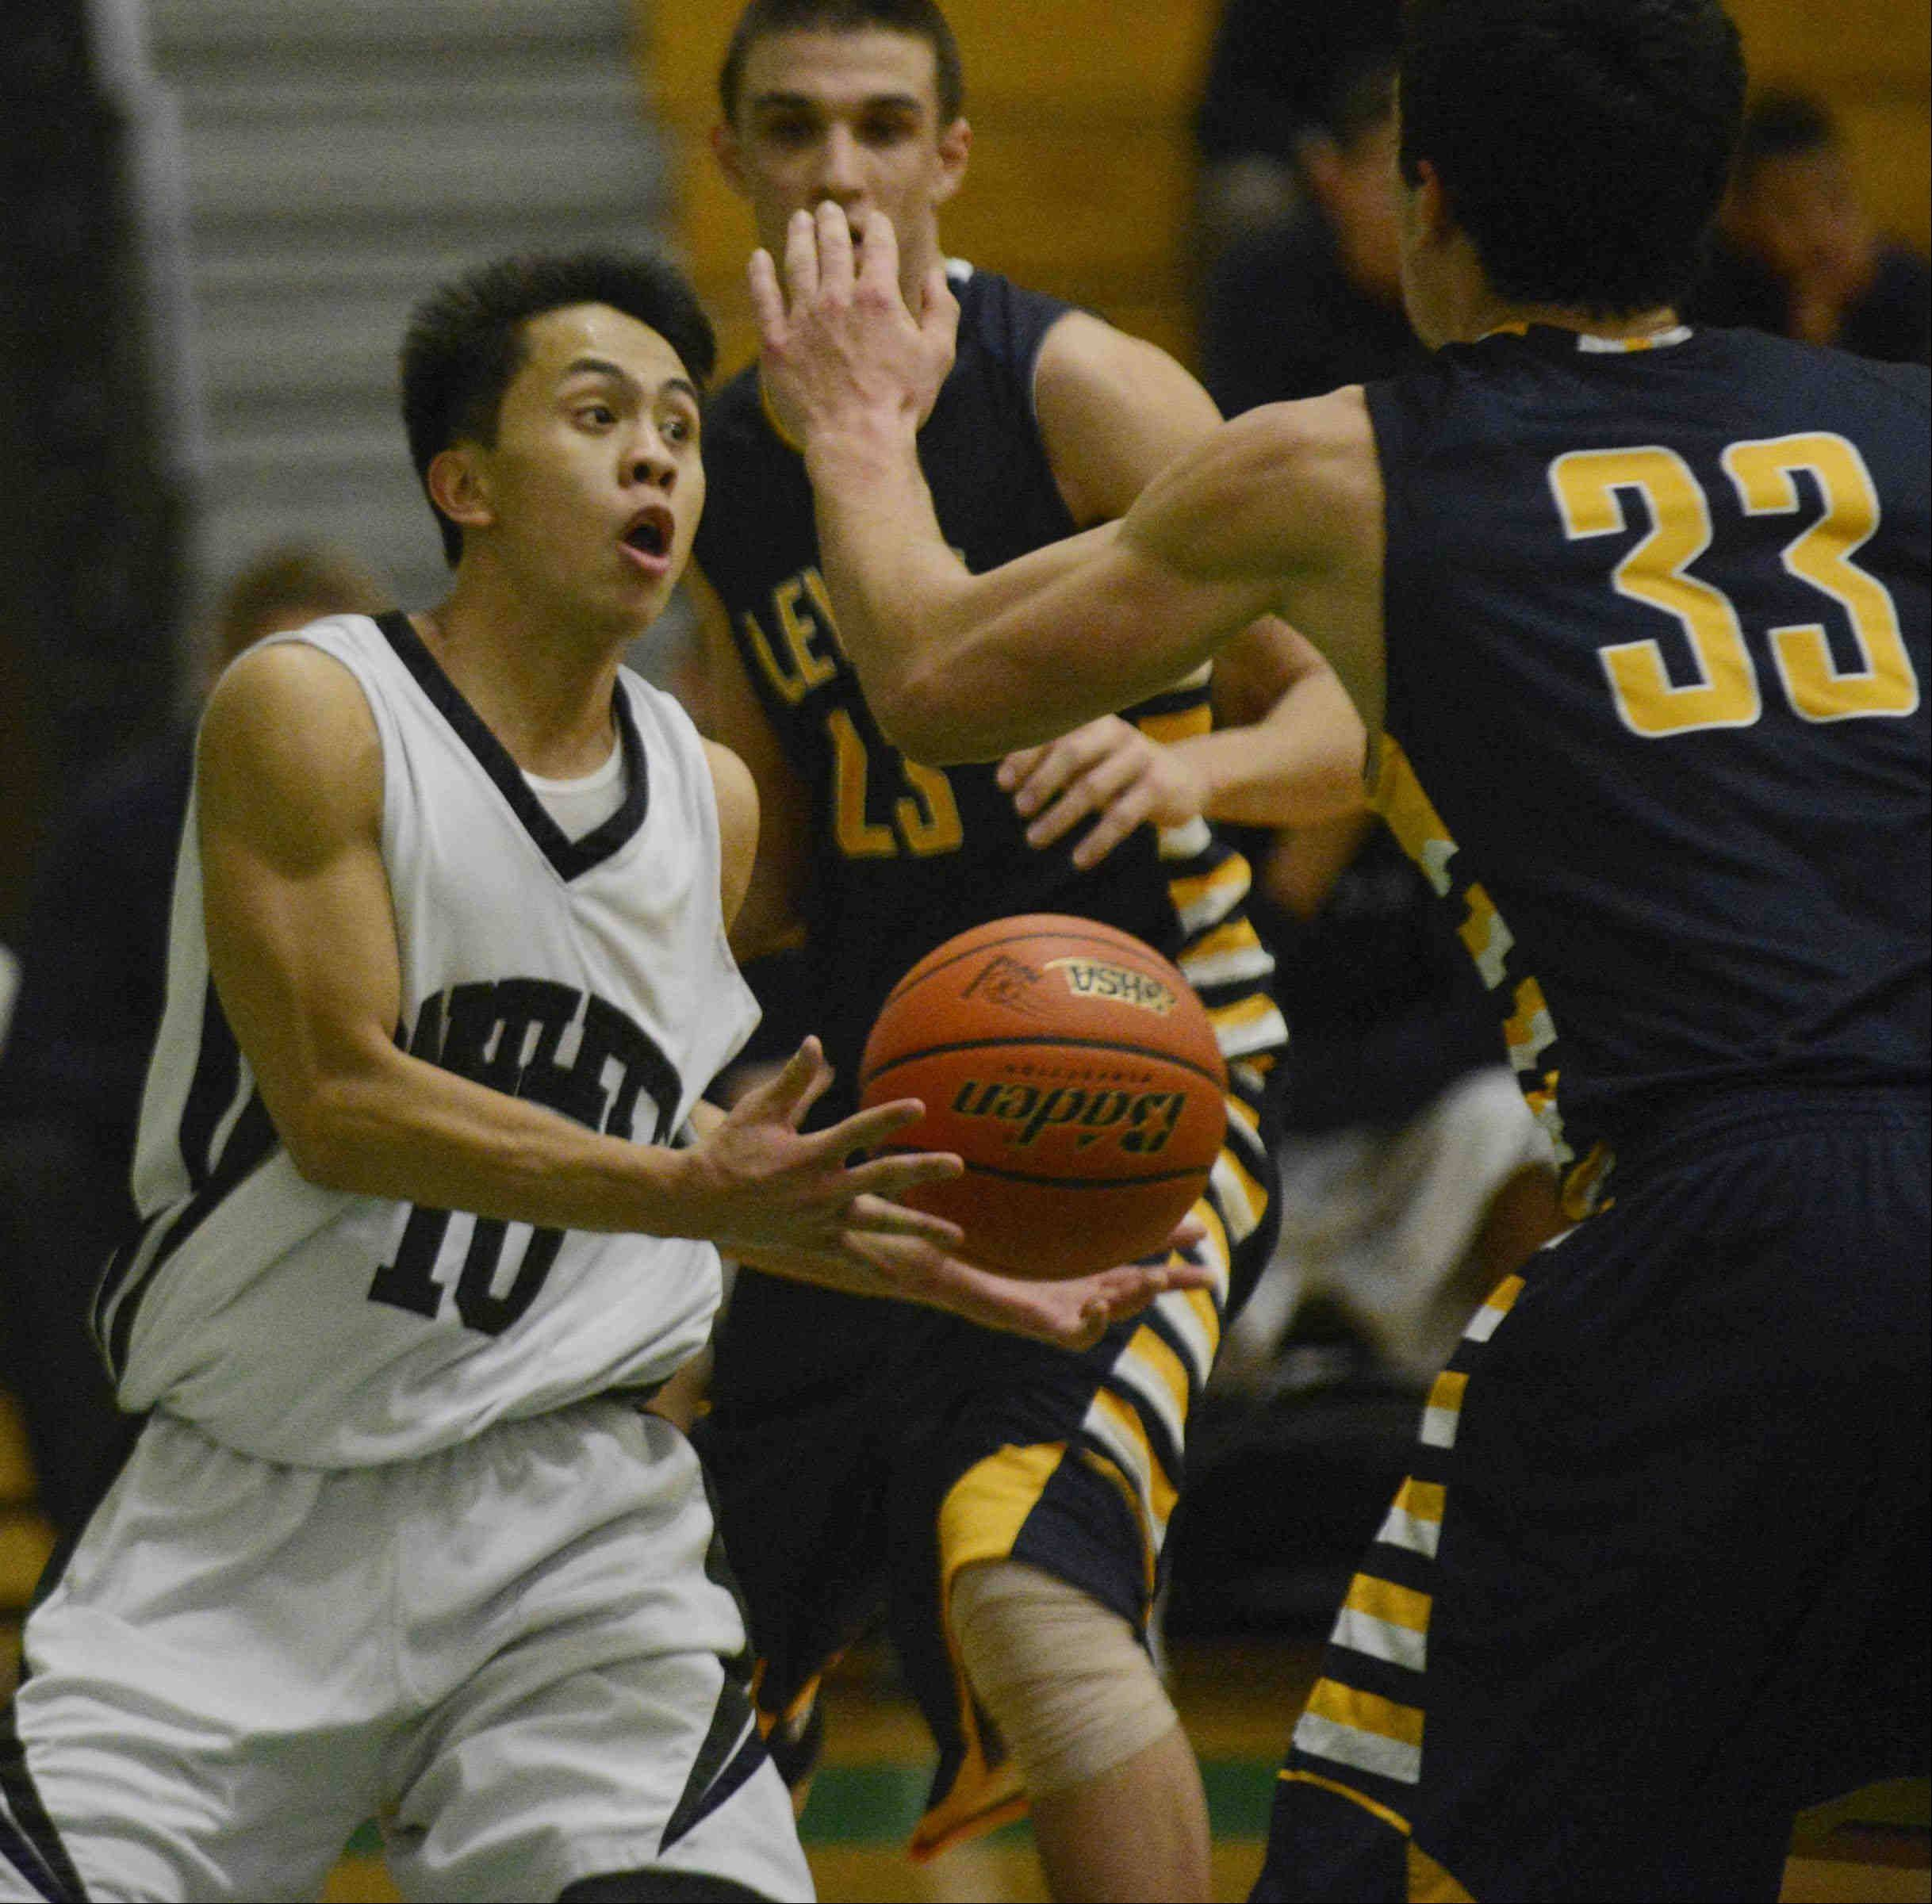 Bartlett's Marcus Aluquin dumps the ball to a teammate against Leyden.